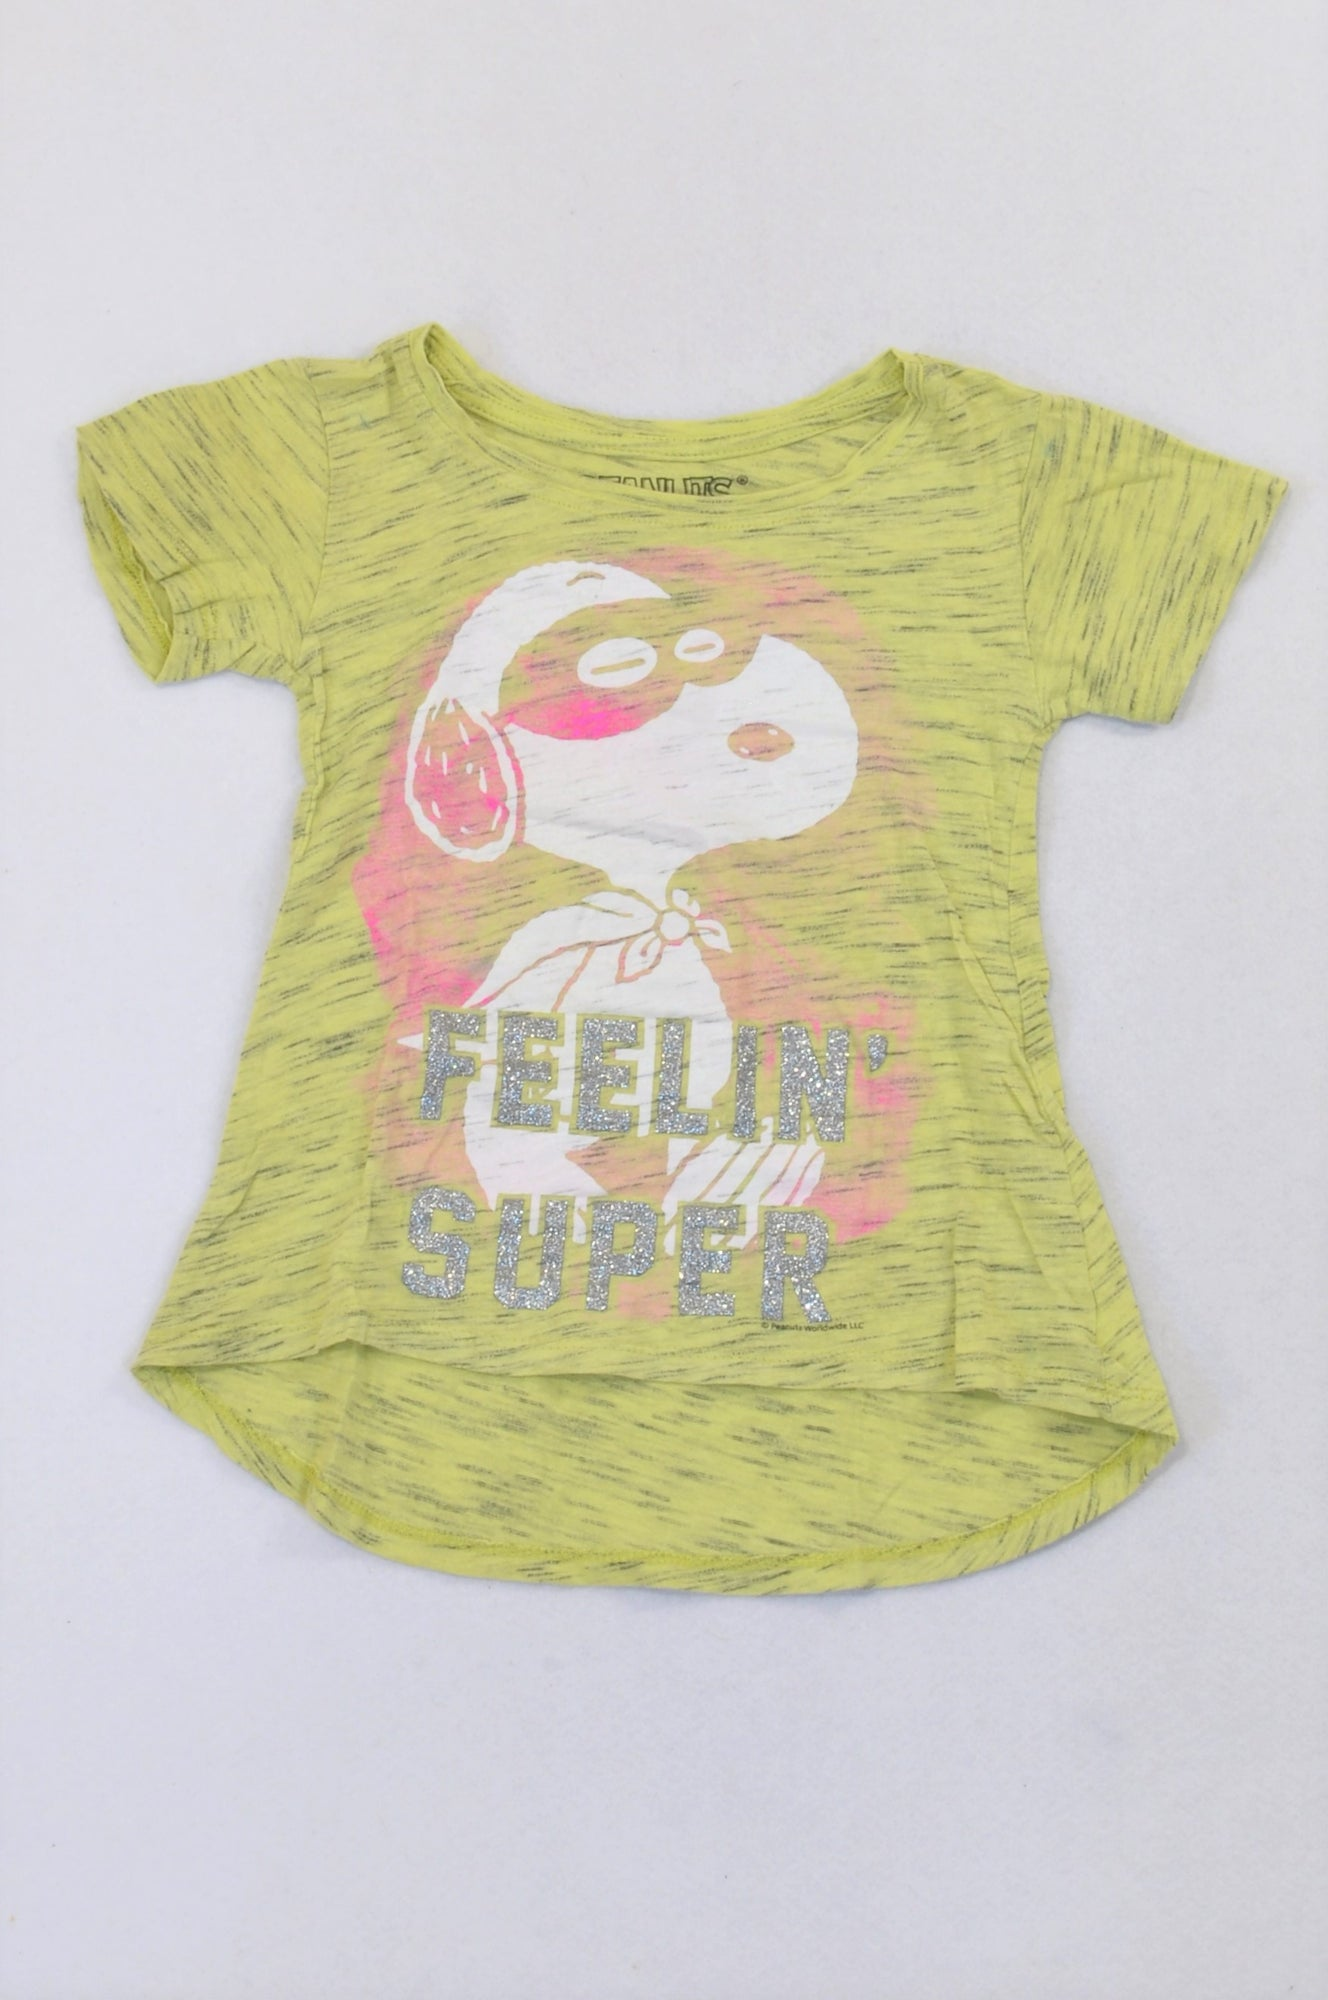 Peanuts Heathered Yellow Feelin' Super Snoopy T-shirt Girls 4-5 years